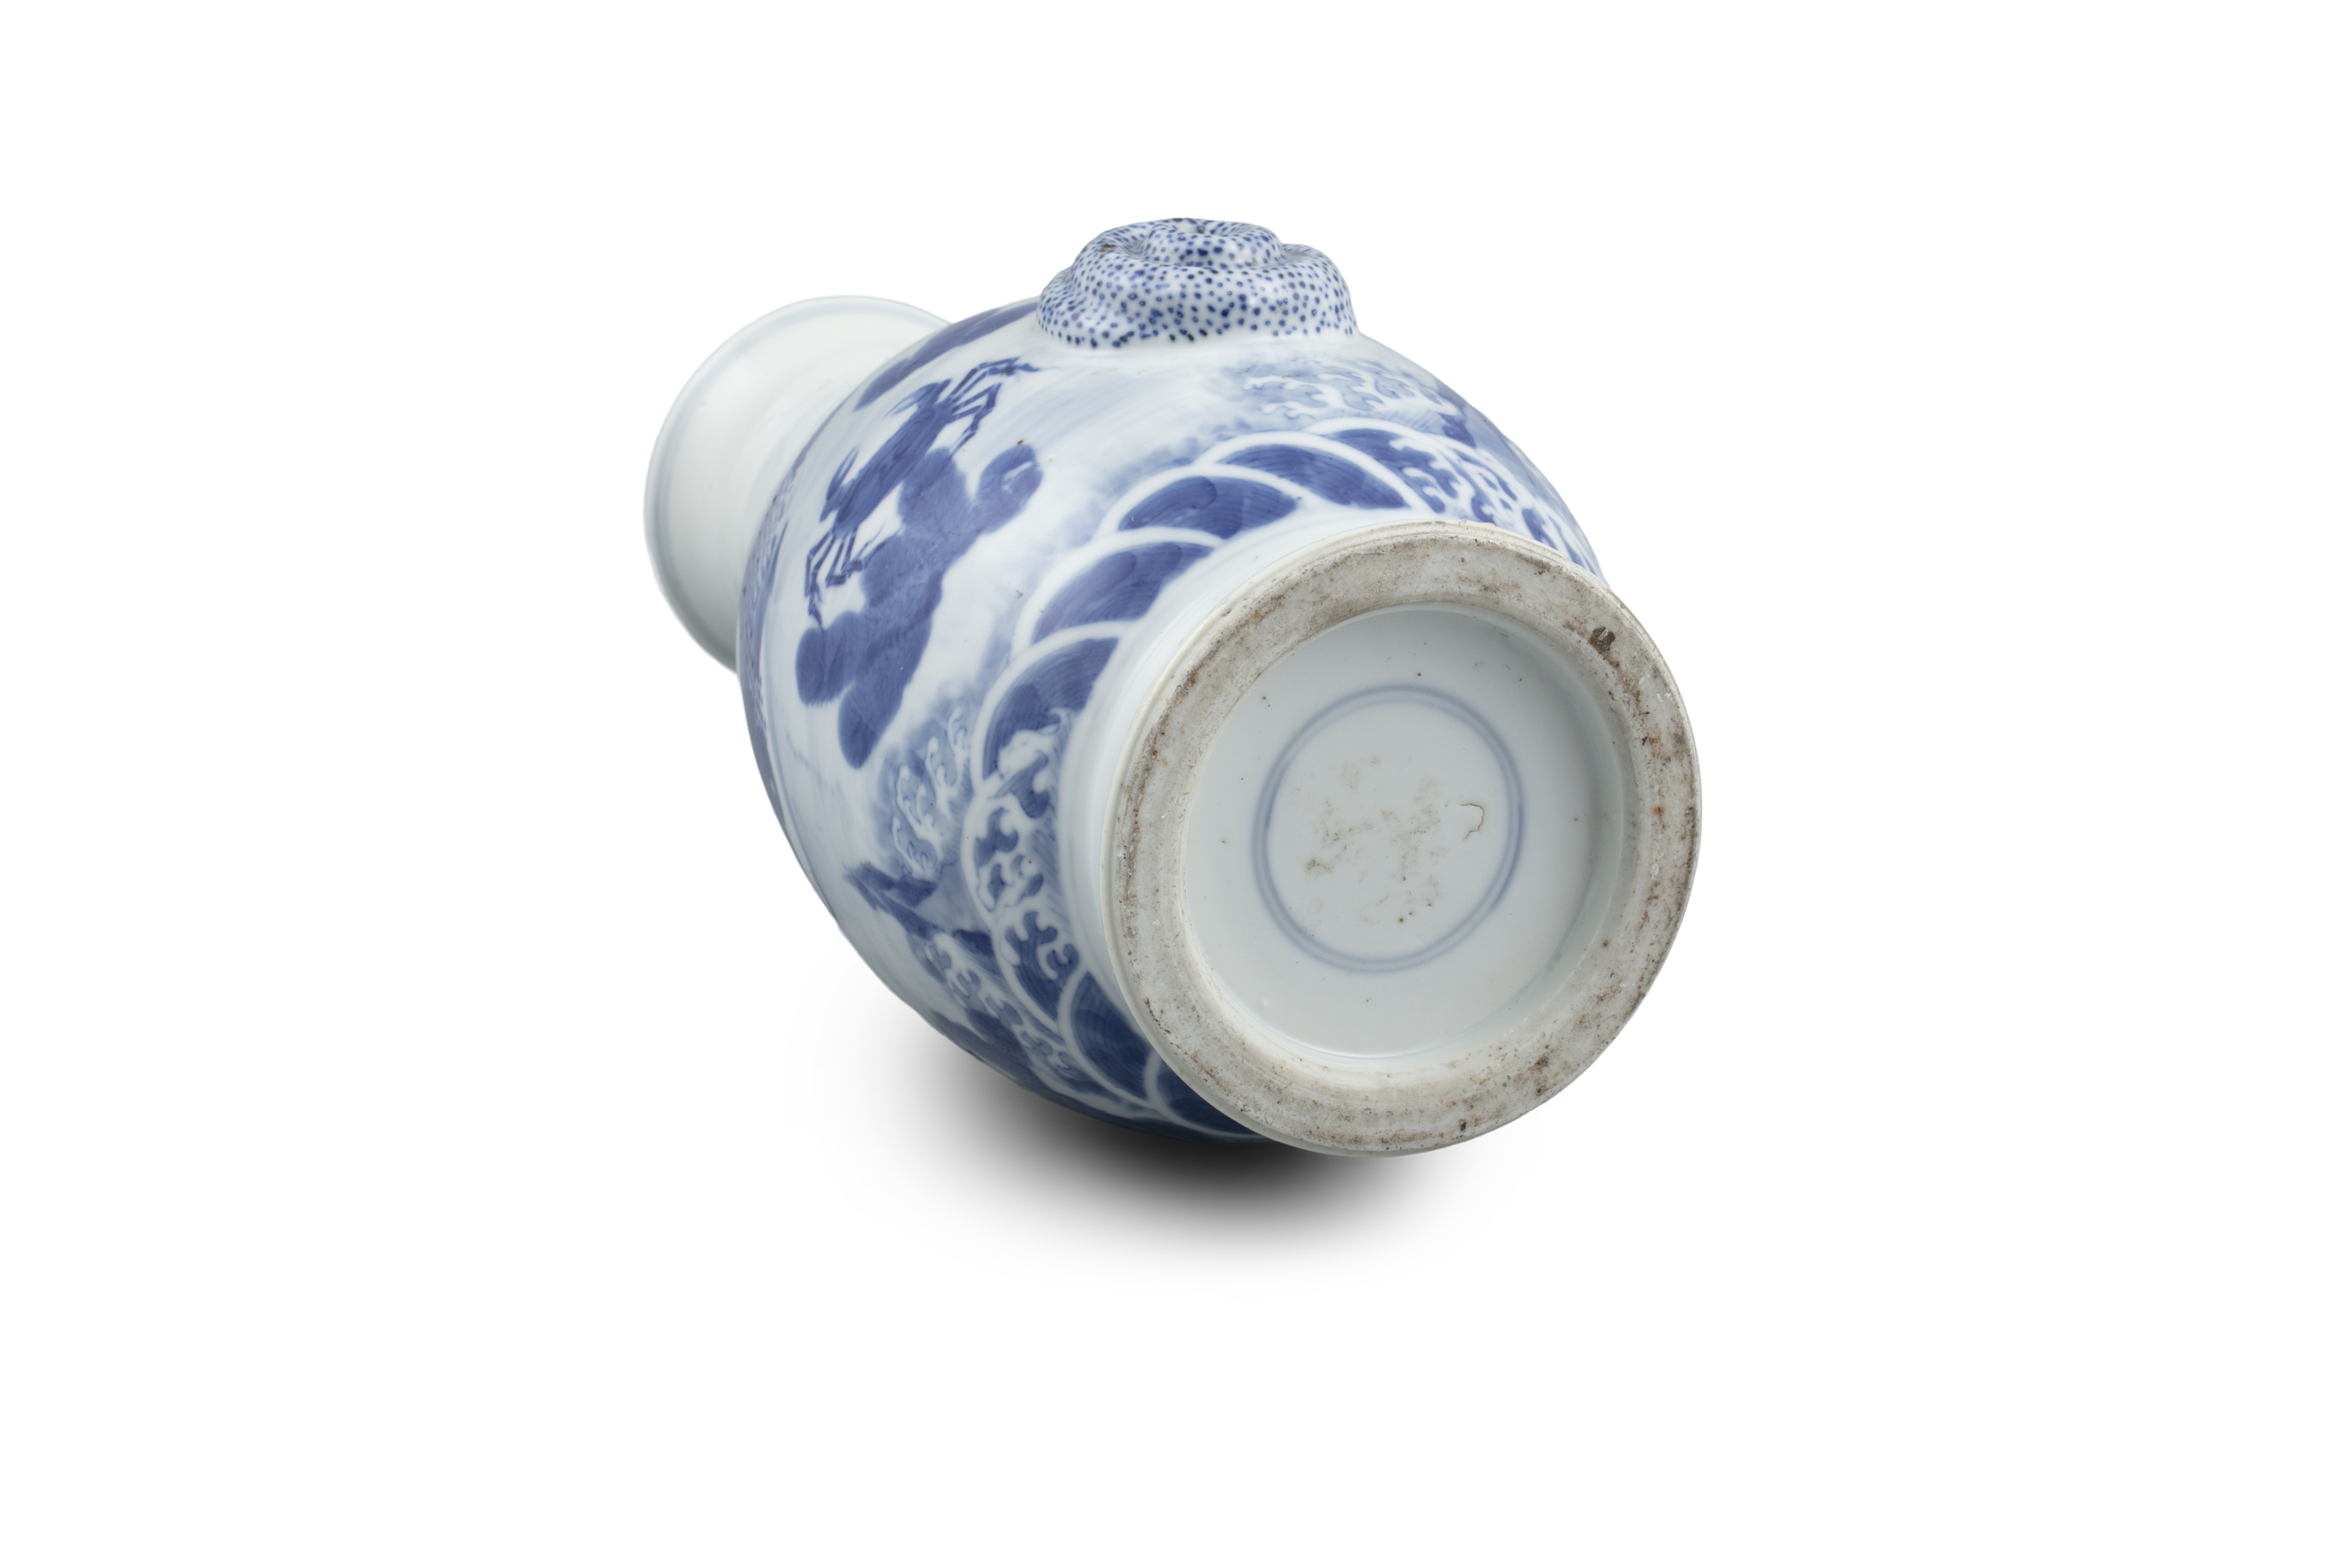 A BLUE AND WHITE 'CARPS AND CRAB' PORCELAIN BOTTLE VASE Most probably Japan, Meiji to Showa period - Image 3 of 6